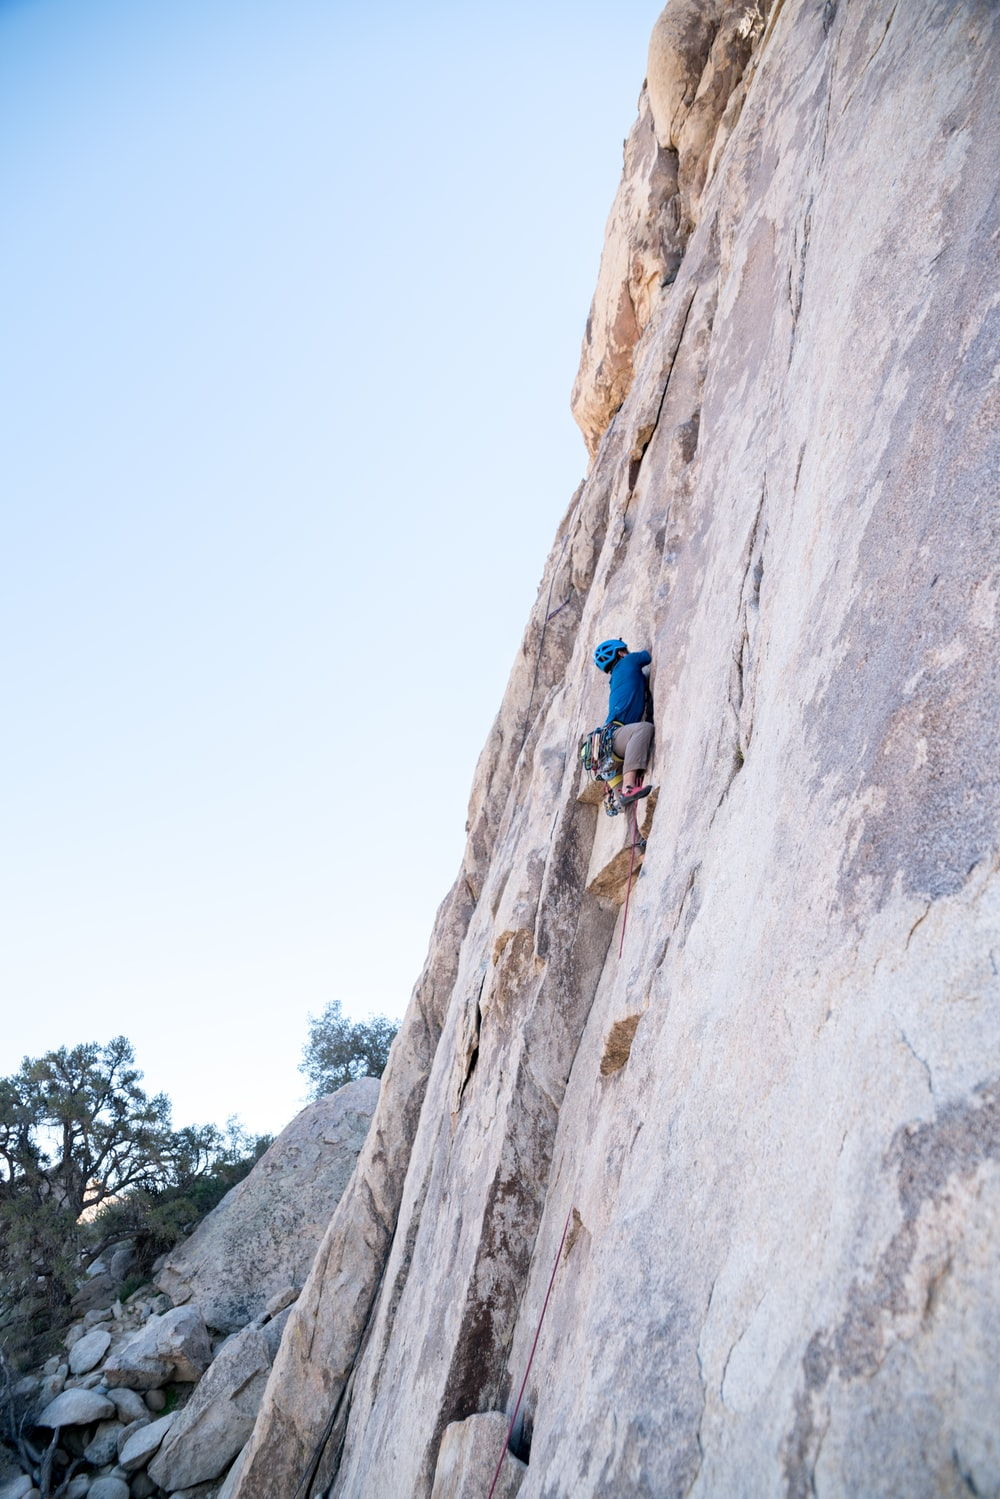 person rock climbing on rocky mountain wall during daytime